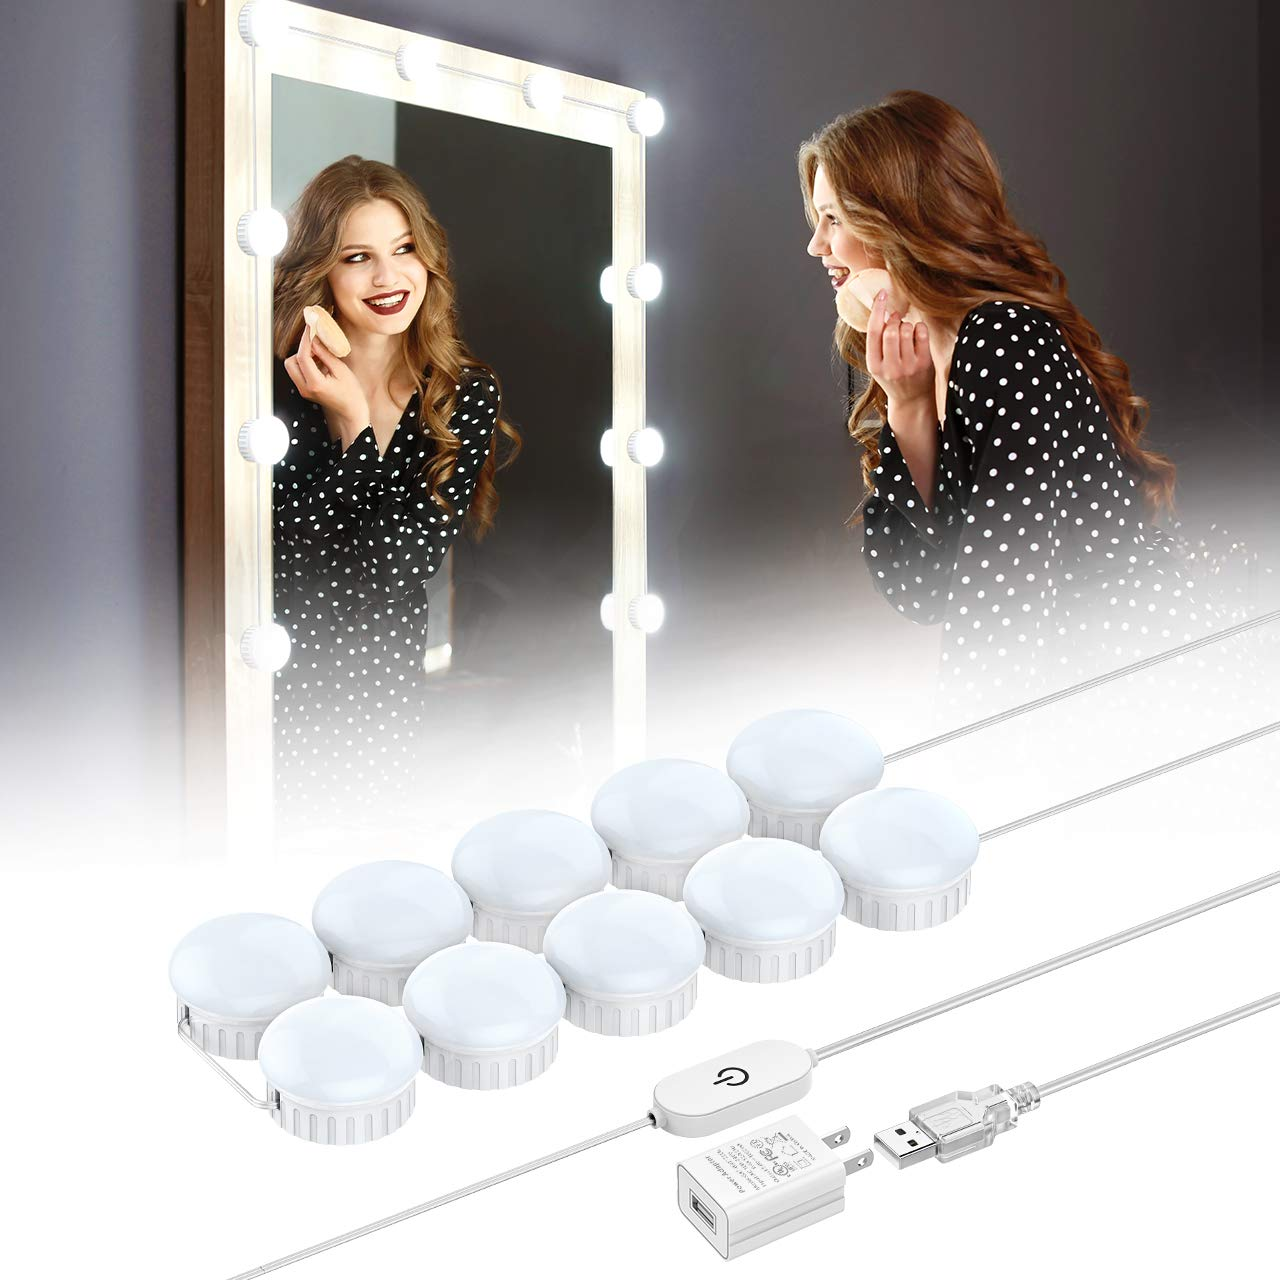 Nicewell Vanity Mirror Lights, Hollywood Style LED Makeup Mirror Lights Kit with 10 Dimmable Daylight White Light Bulbs for Vanity Table and Bathroom Dressing Room Mirror(Mirror not Included)